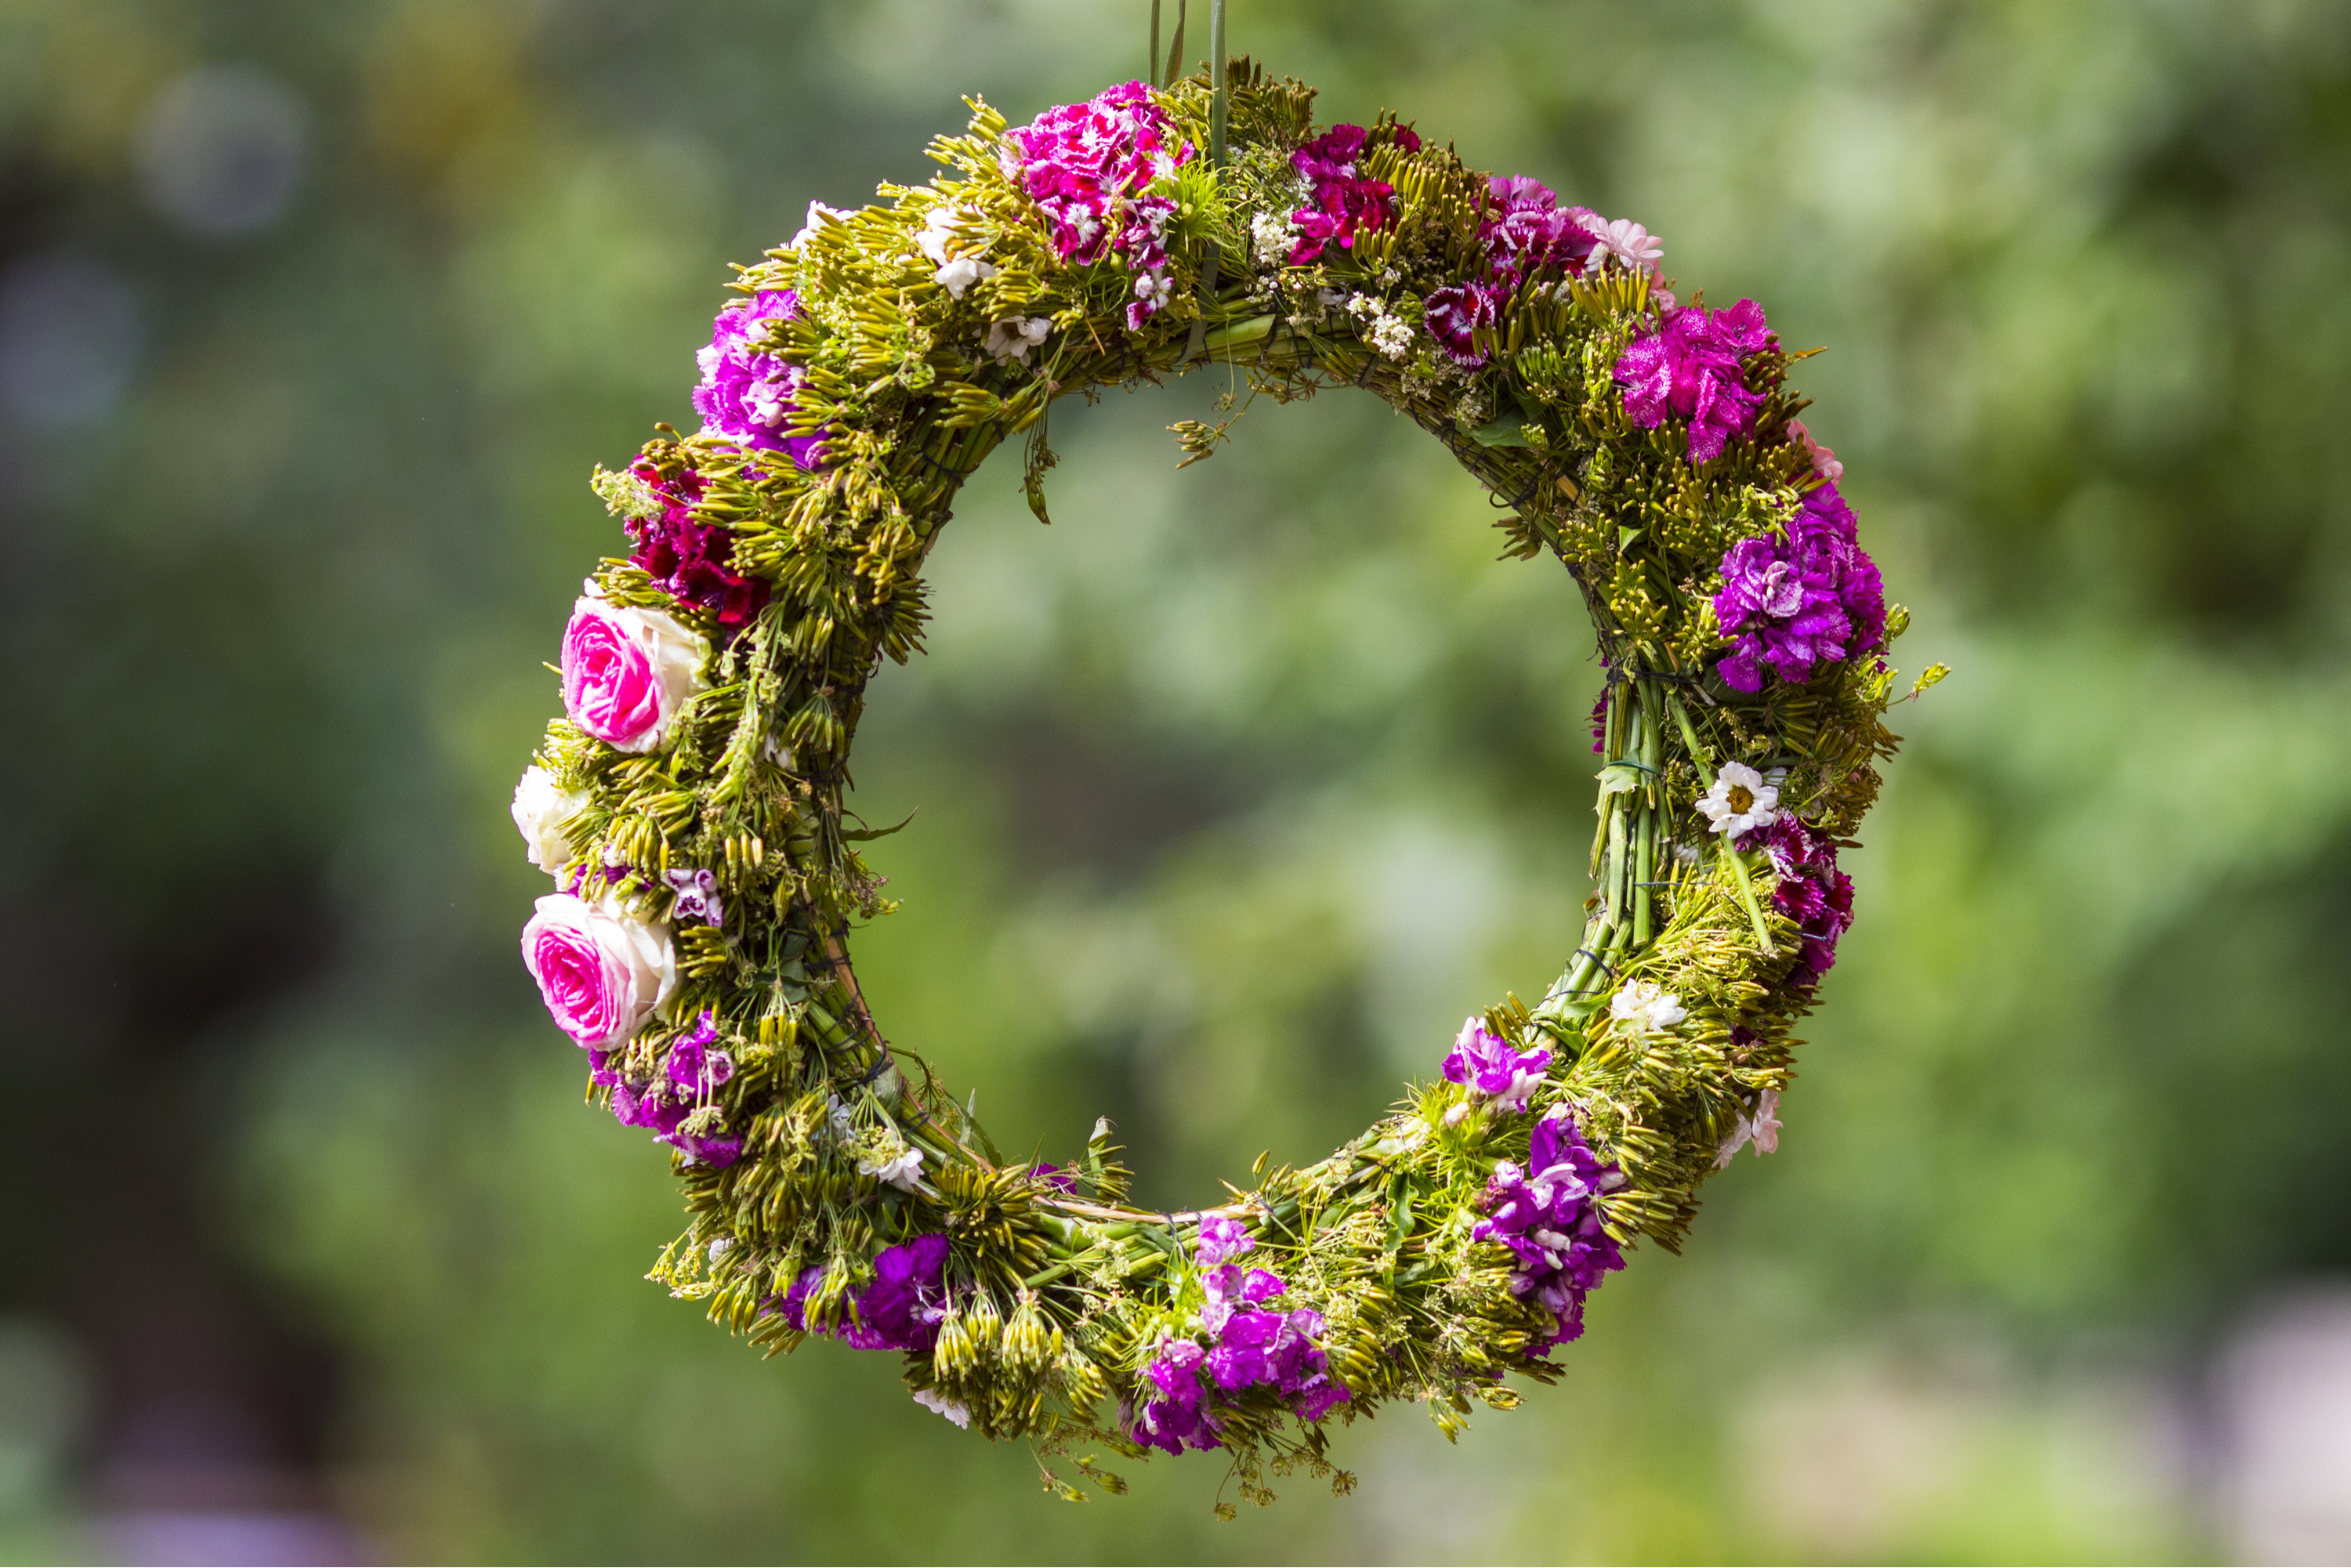 wreath | spring wreath | spring | diy spring wreath | diy wreath | diy | spring projects | spring crafts | crafts | projects